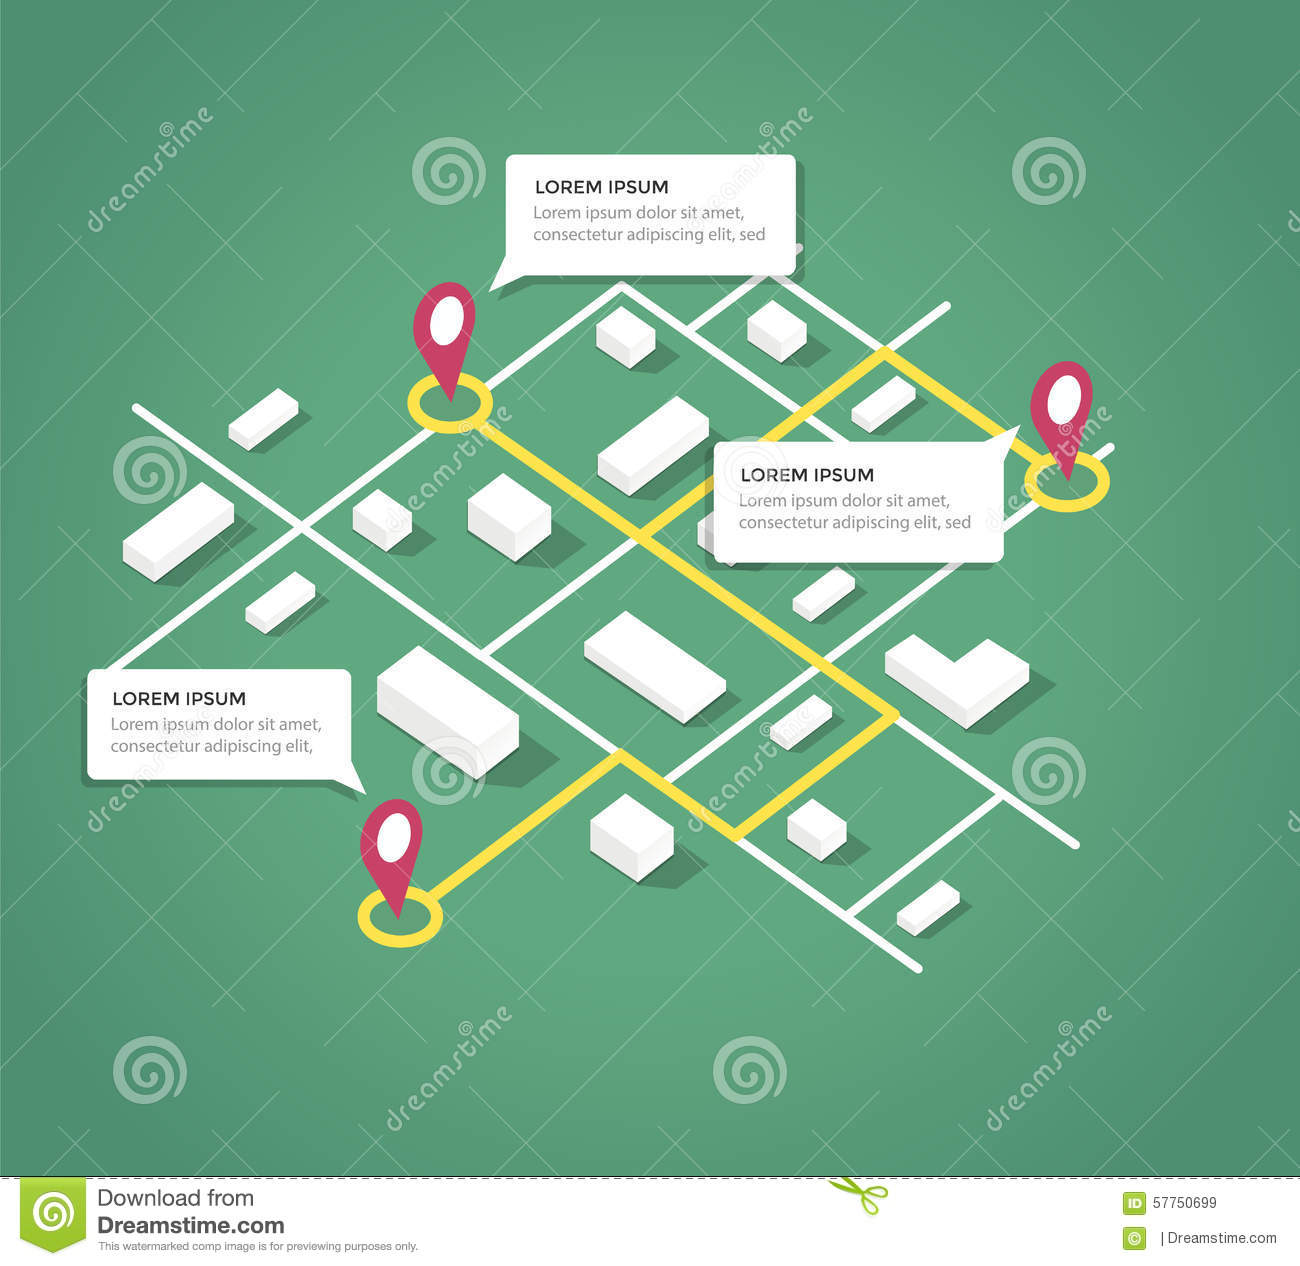 Isometric City Map Design Elements Stock Vector ... on detail design, travel design, blog design, monthly newsletter design, business design, geographic coordinate system, map projection, contour line, 2013 latest house design, faq design, digital mapping, simple timeline design, economic geography, 2013 best graphic design, political geography, brochure design, web design, geographic information system, chart design, logo design, book design, top page design, flag design, design design, spatial analysis, zipcode design, universal transverse mercator coordinate system, aerial photography, services design, donate design, early world maps,